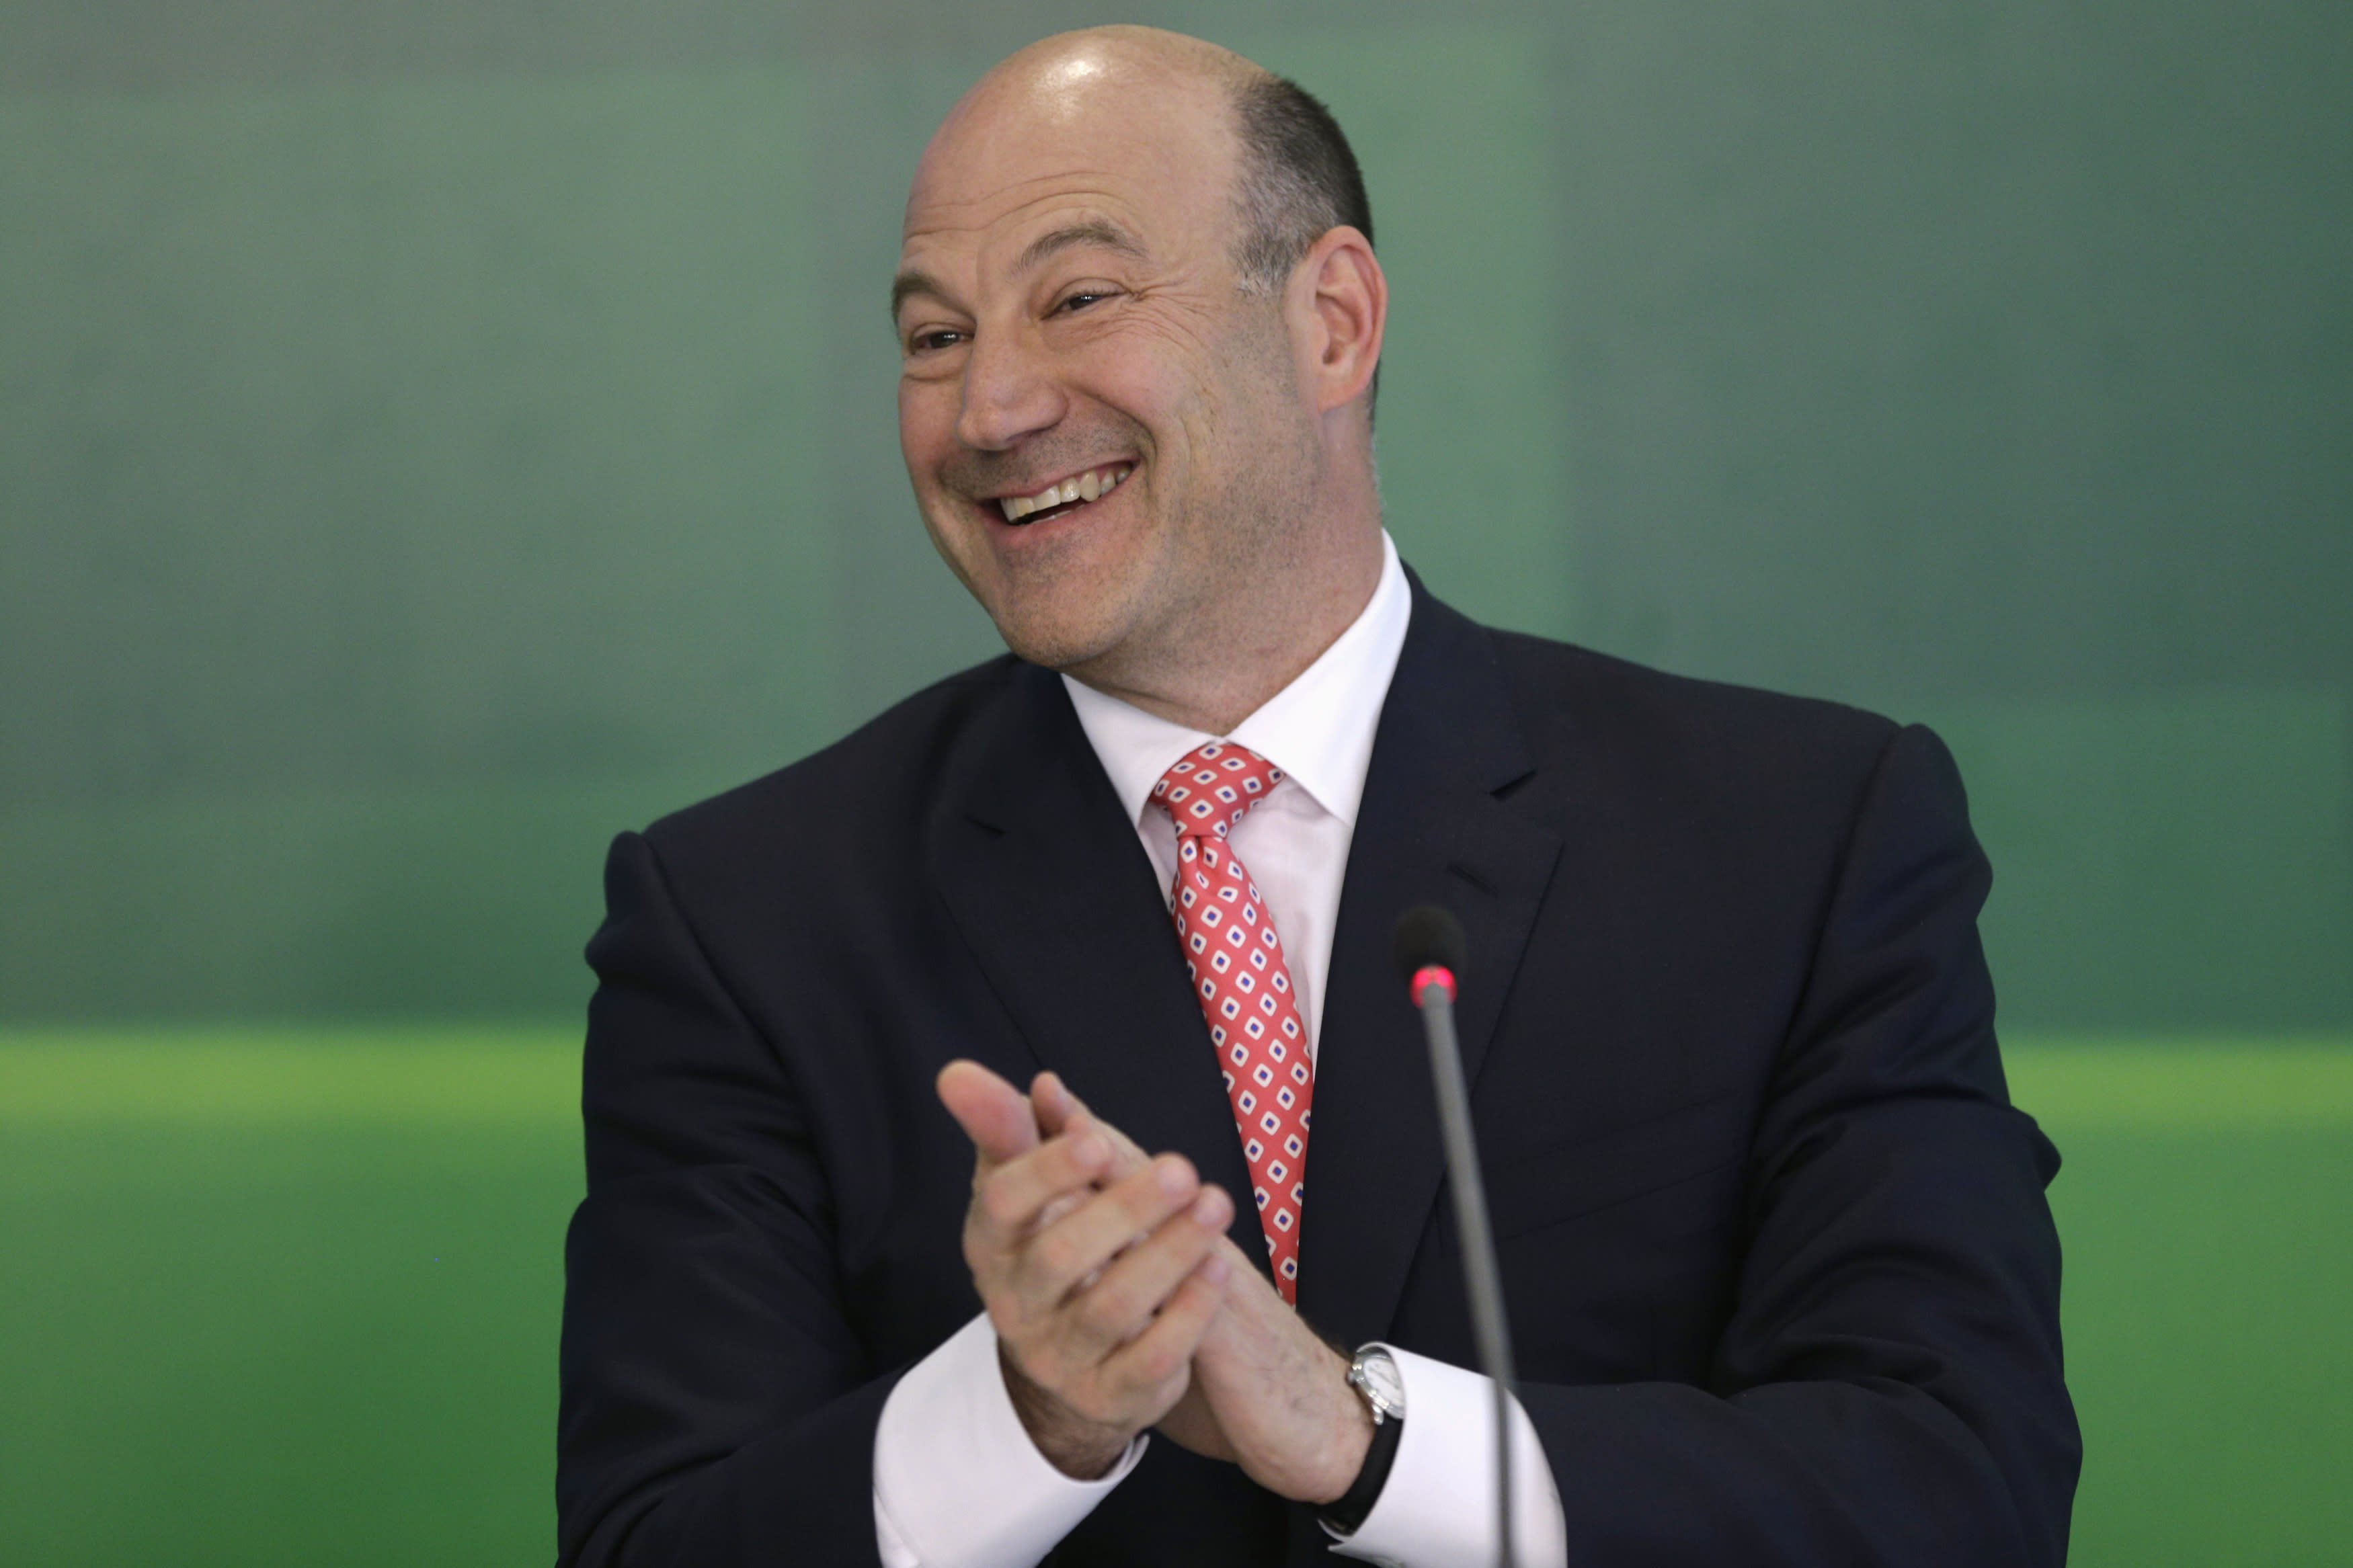 Is This Why Goldman Sachs Stock Is Surging?